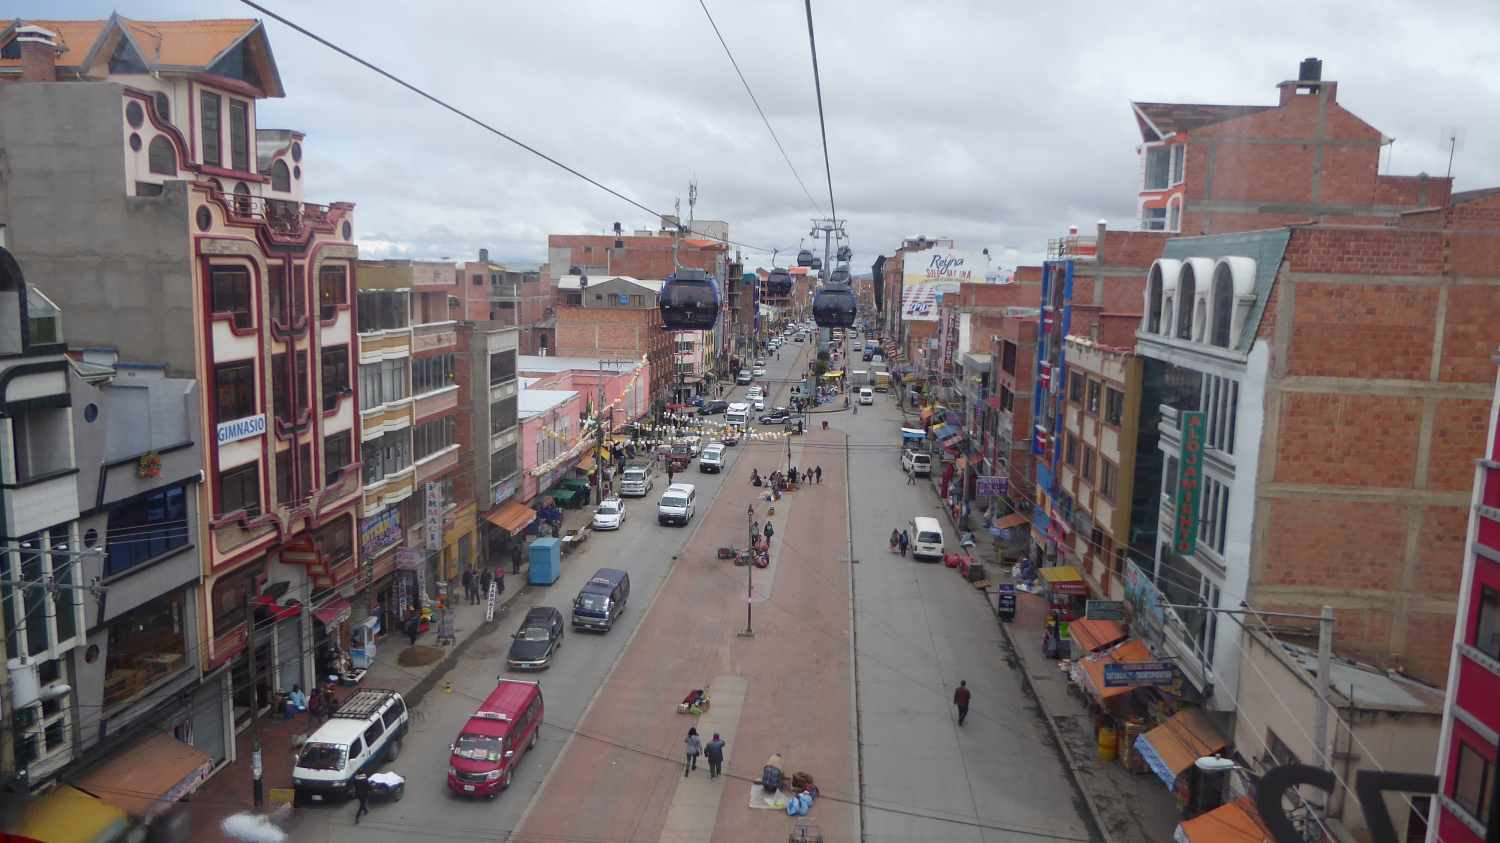 Main Street in El Alto from above